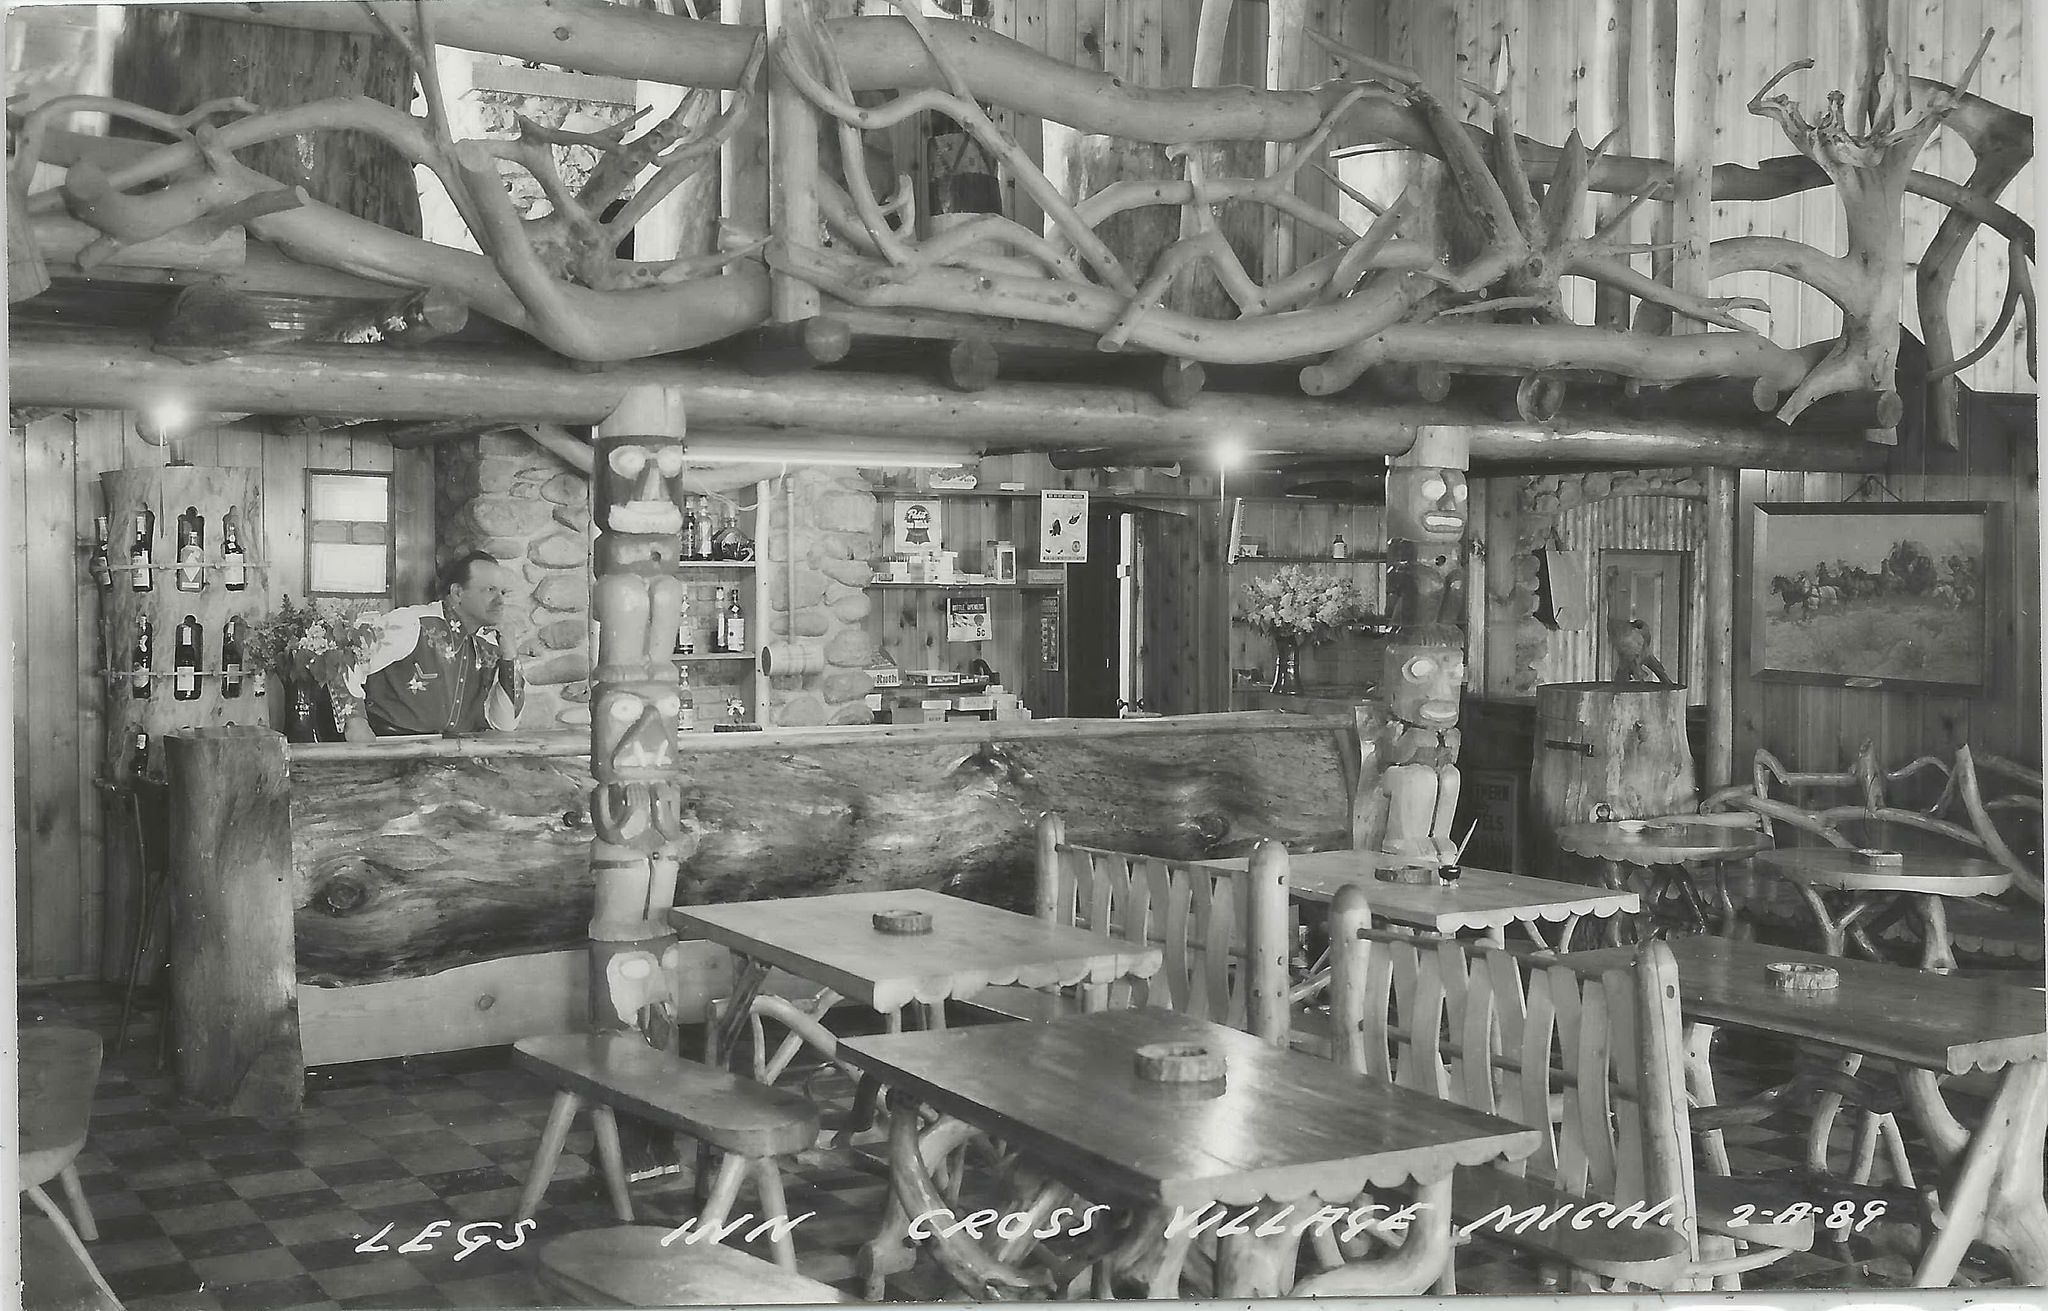 Nw Cross Village Mi Rppc 1950s Legs Inn Bar And Cottages Interior Owner Stan Smolaknehind Bar He Was Known As Chief White Cloud He Willed Business To Smolak Fam Cottage Interiors